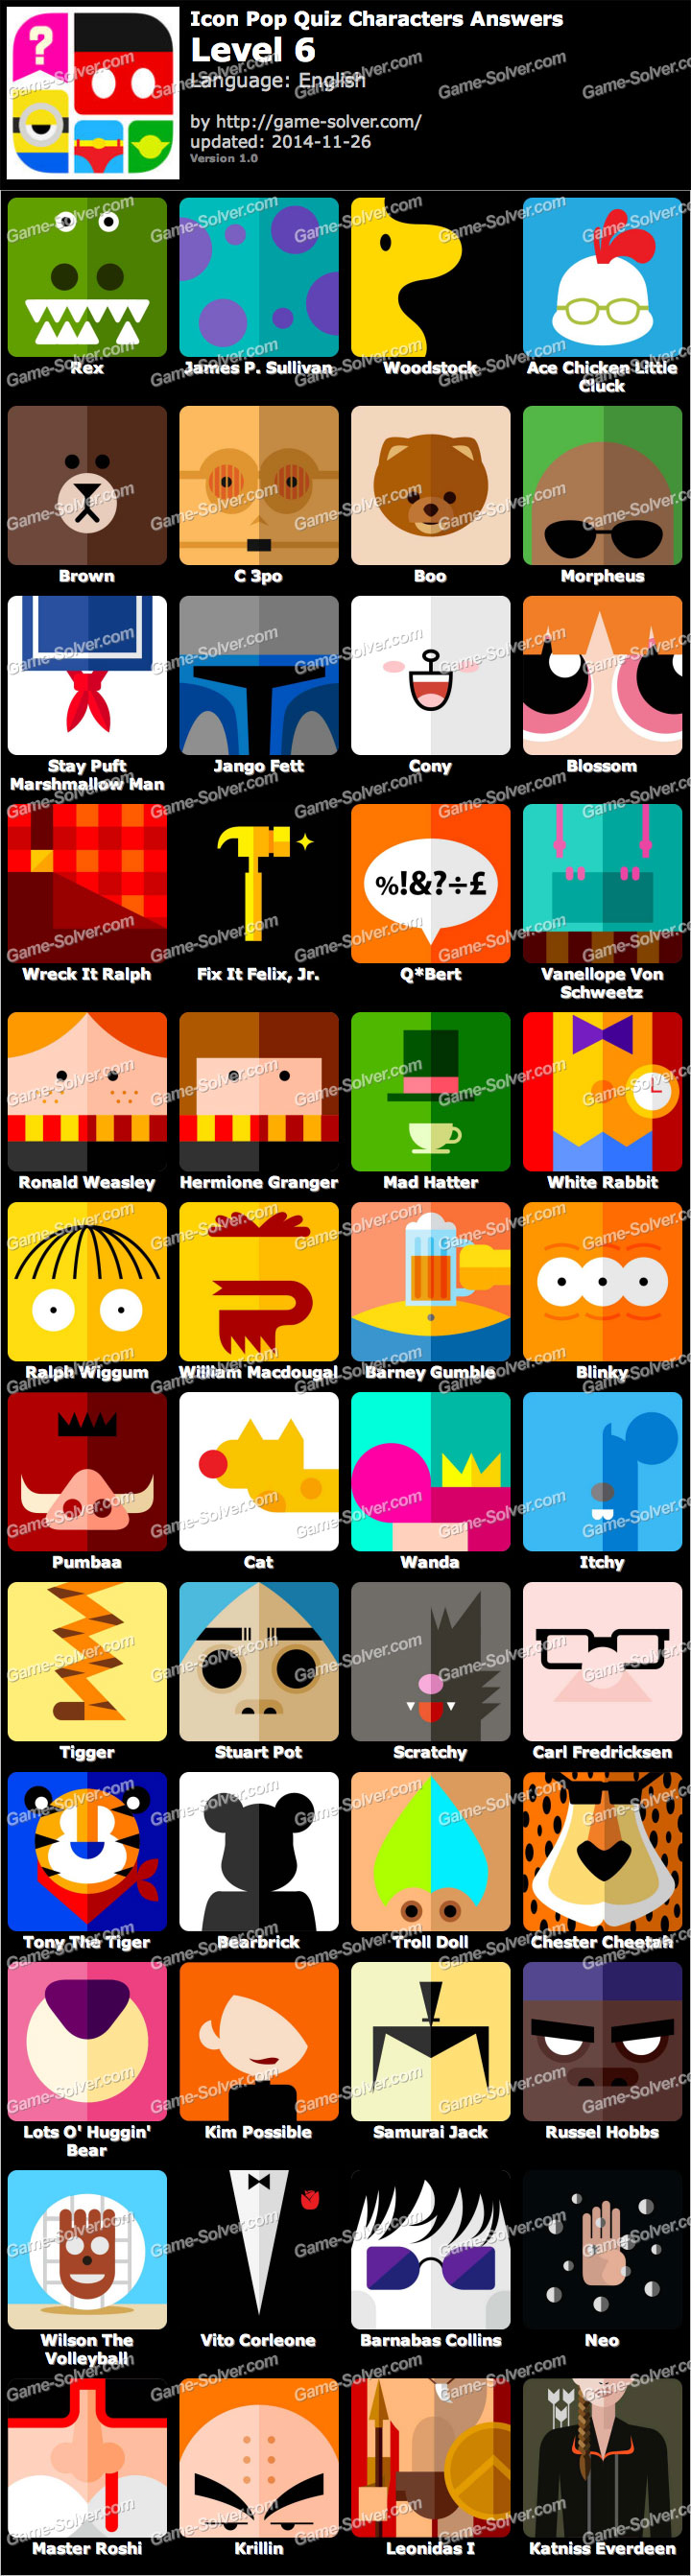 Level 6 Cartoon Characters : Icon pop quiz characters level game solver